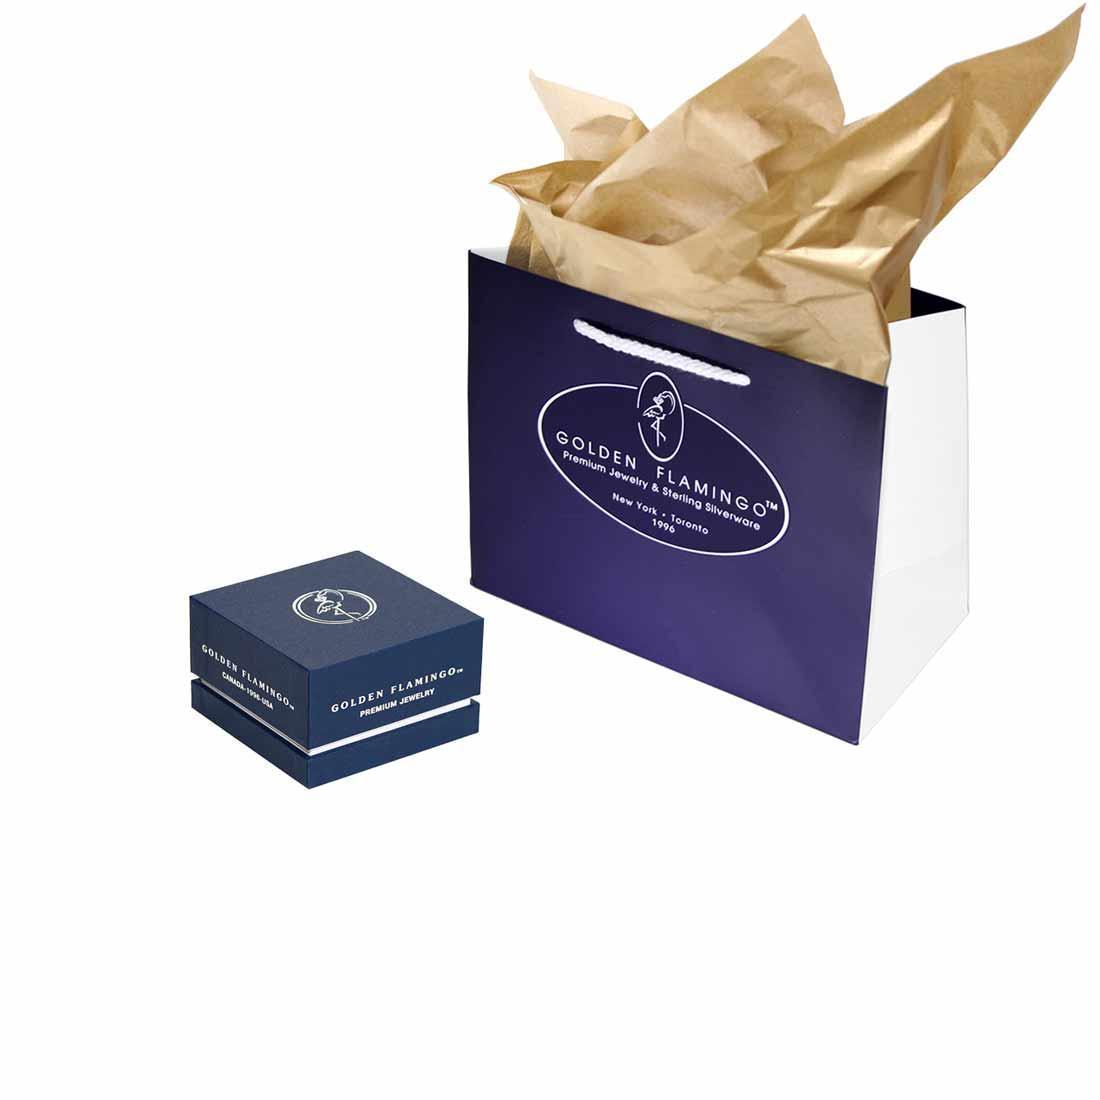 Deluxe gift box by Golden Flamingo brand